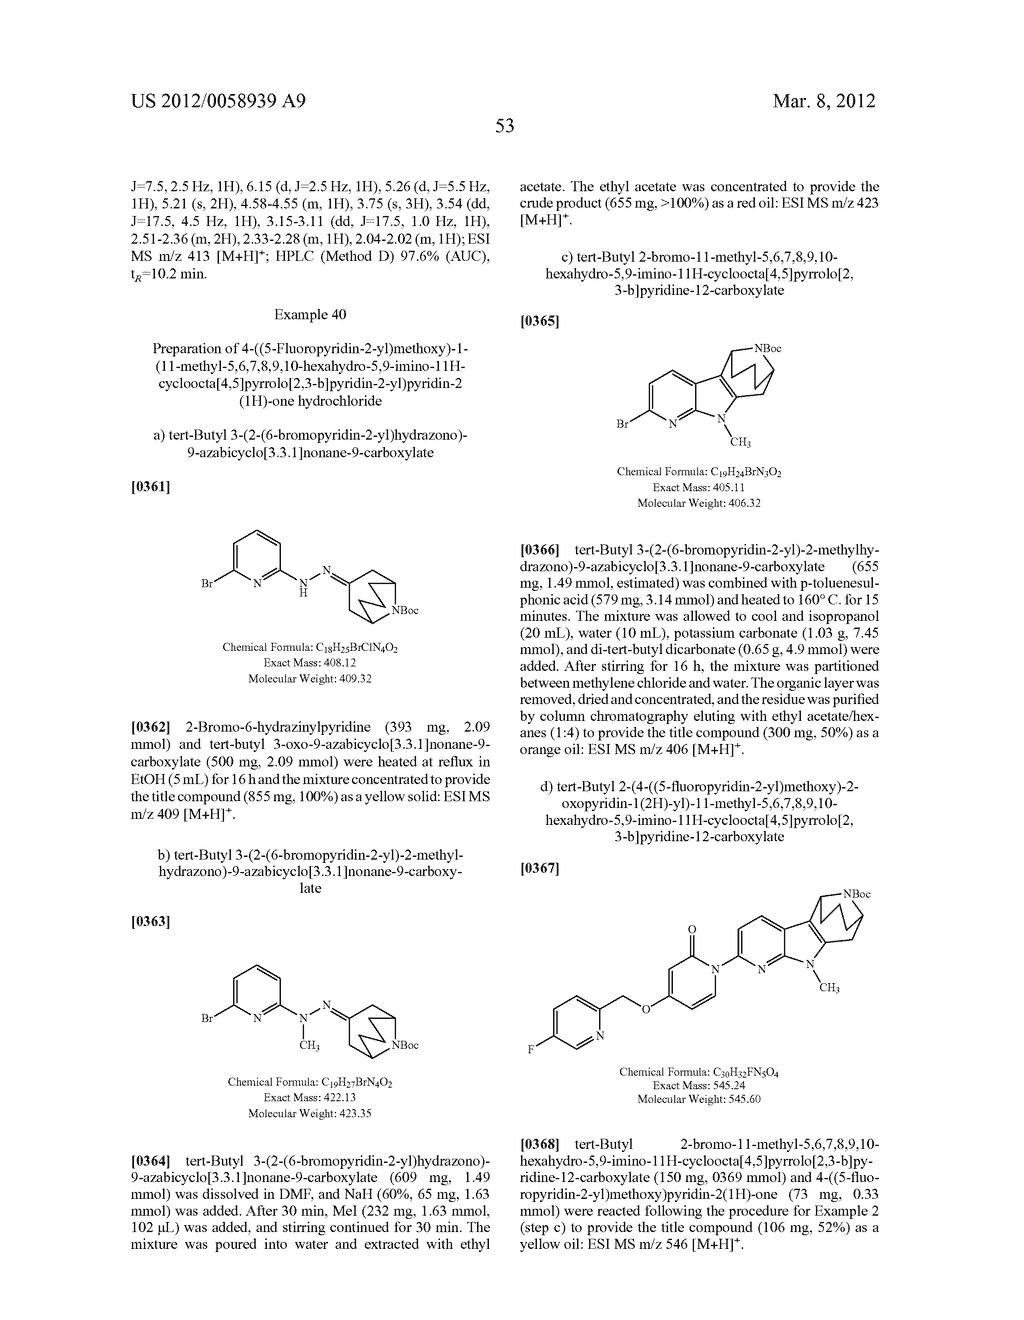 AZABICYCLOALKANE-INDOLE AND AZABICYCLOALKANE-PYRROLO-PYRIDINE MCH-1     ANTAGONISTS, METHODS OF MAKING, AND USE THEREOF - diagram, schematic, and image 54